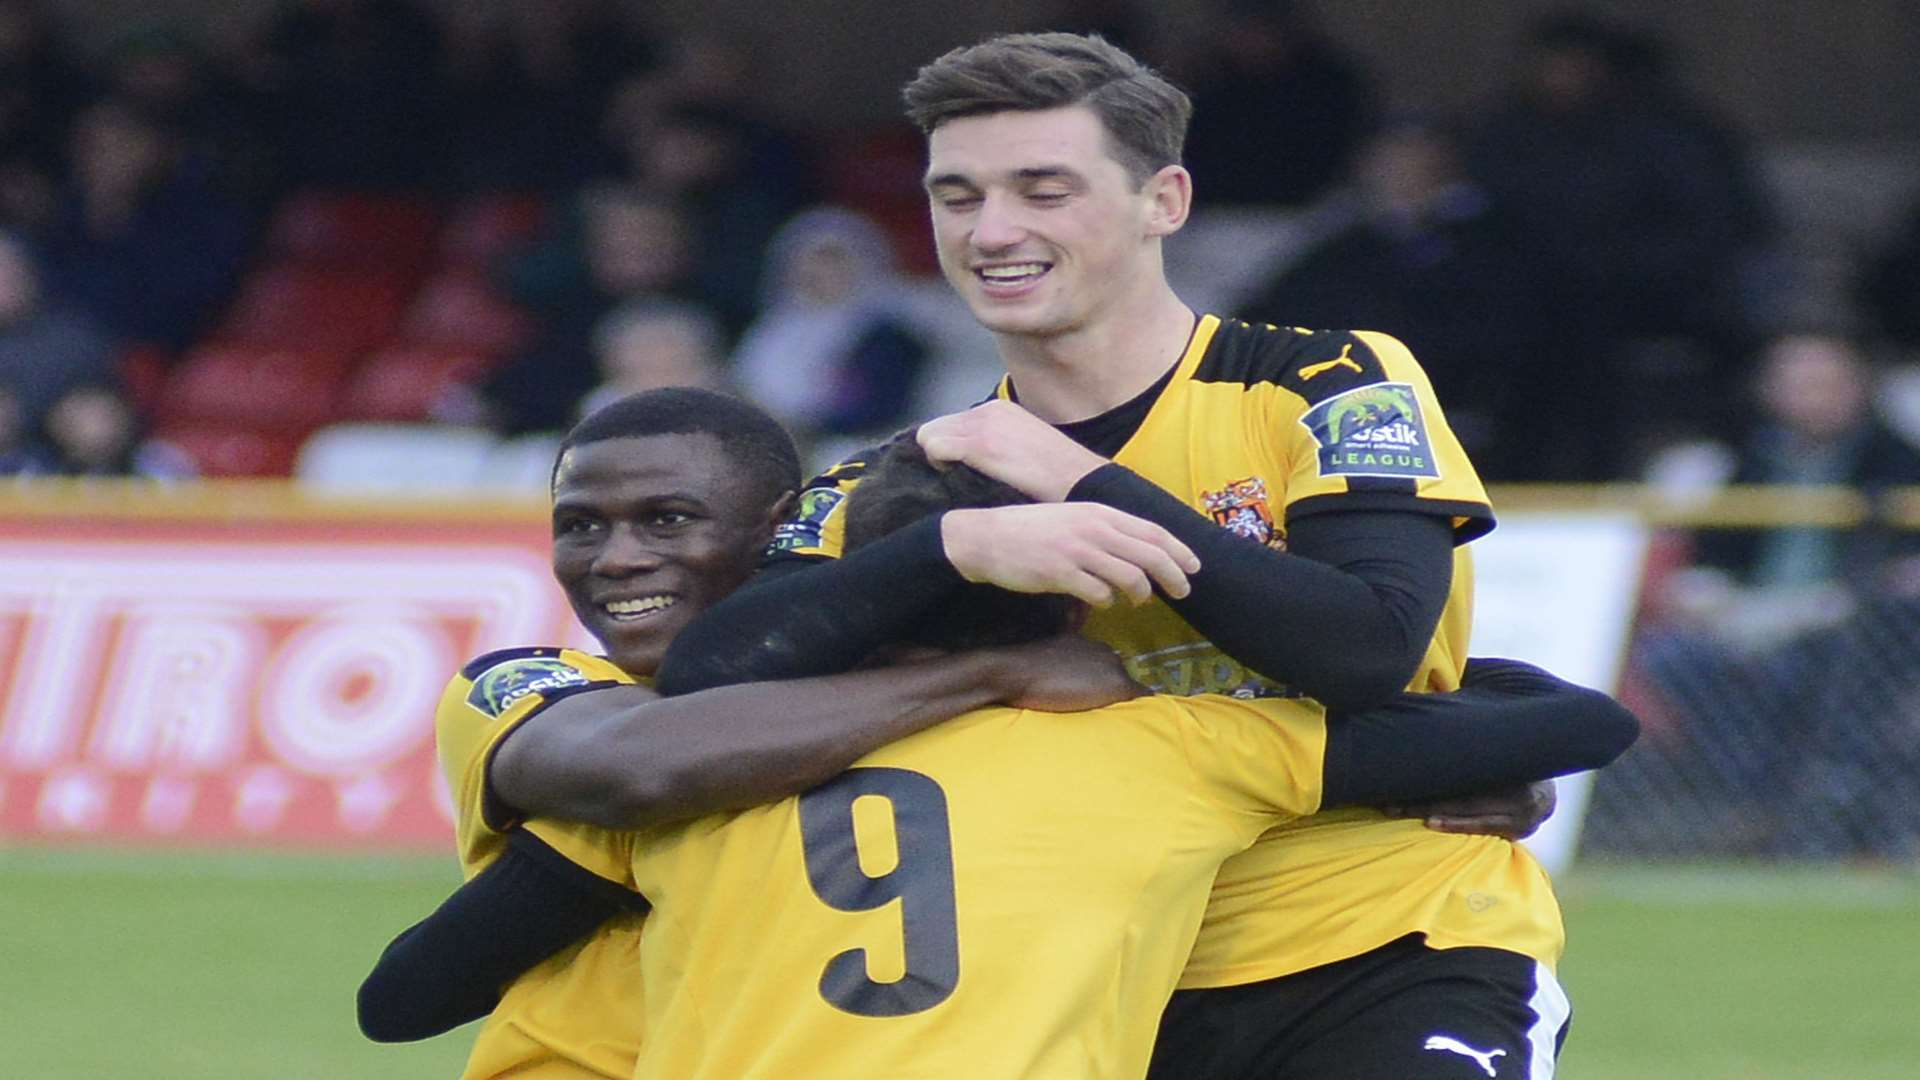 Folkestone celebrate one of their goals against Dorking Wanderers Picture: Paul Amos